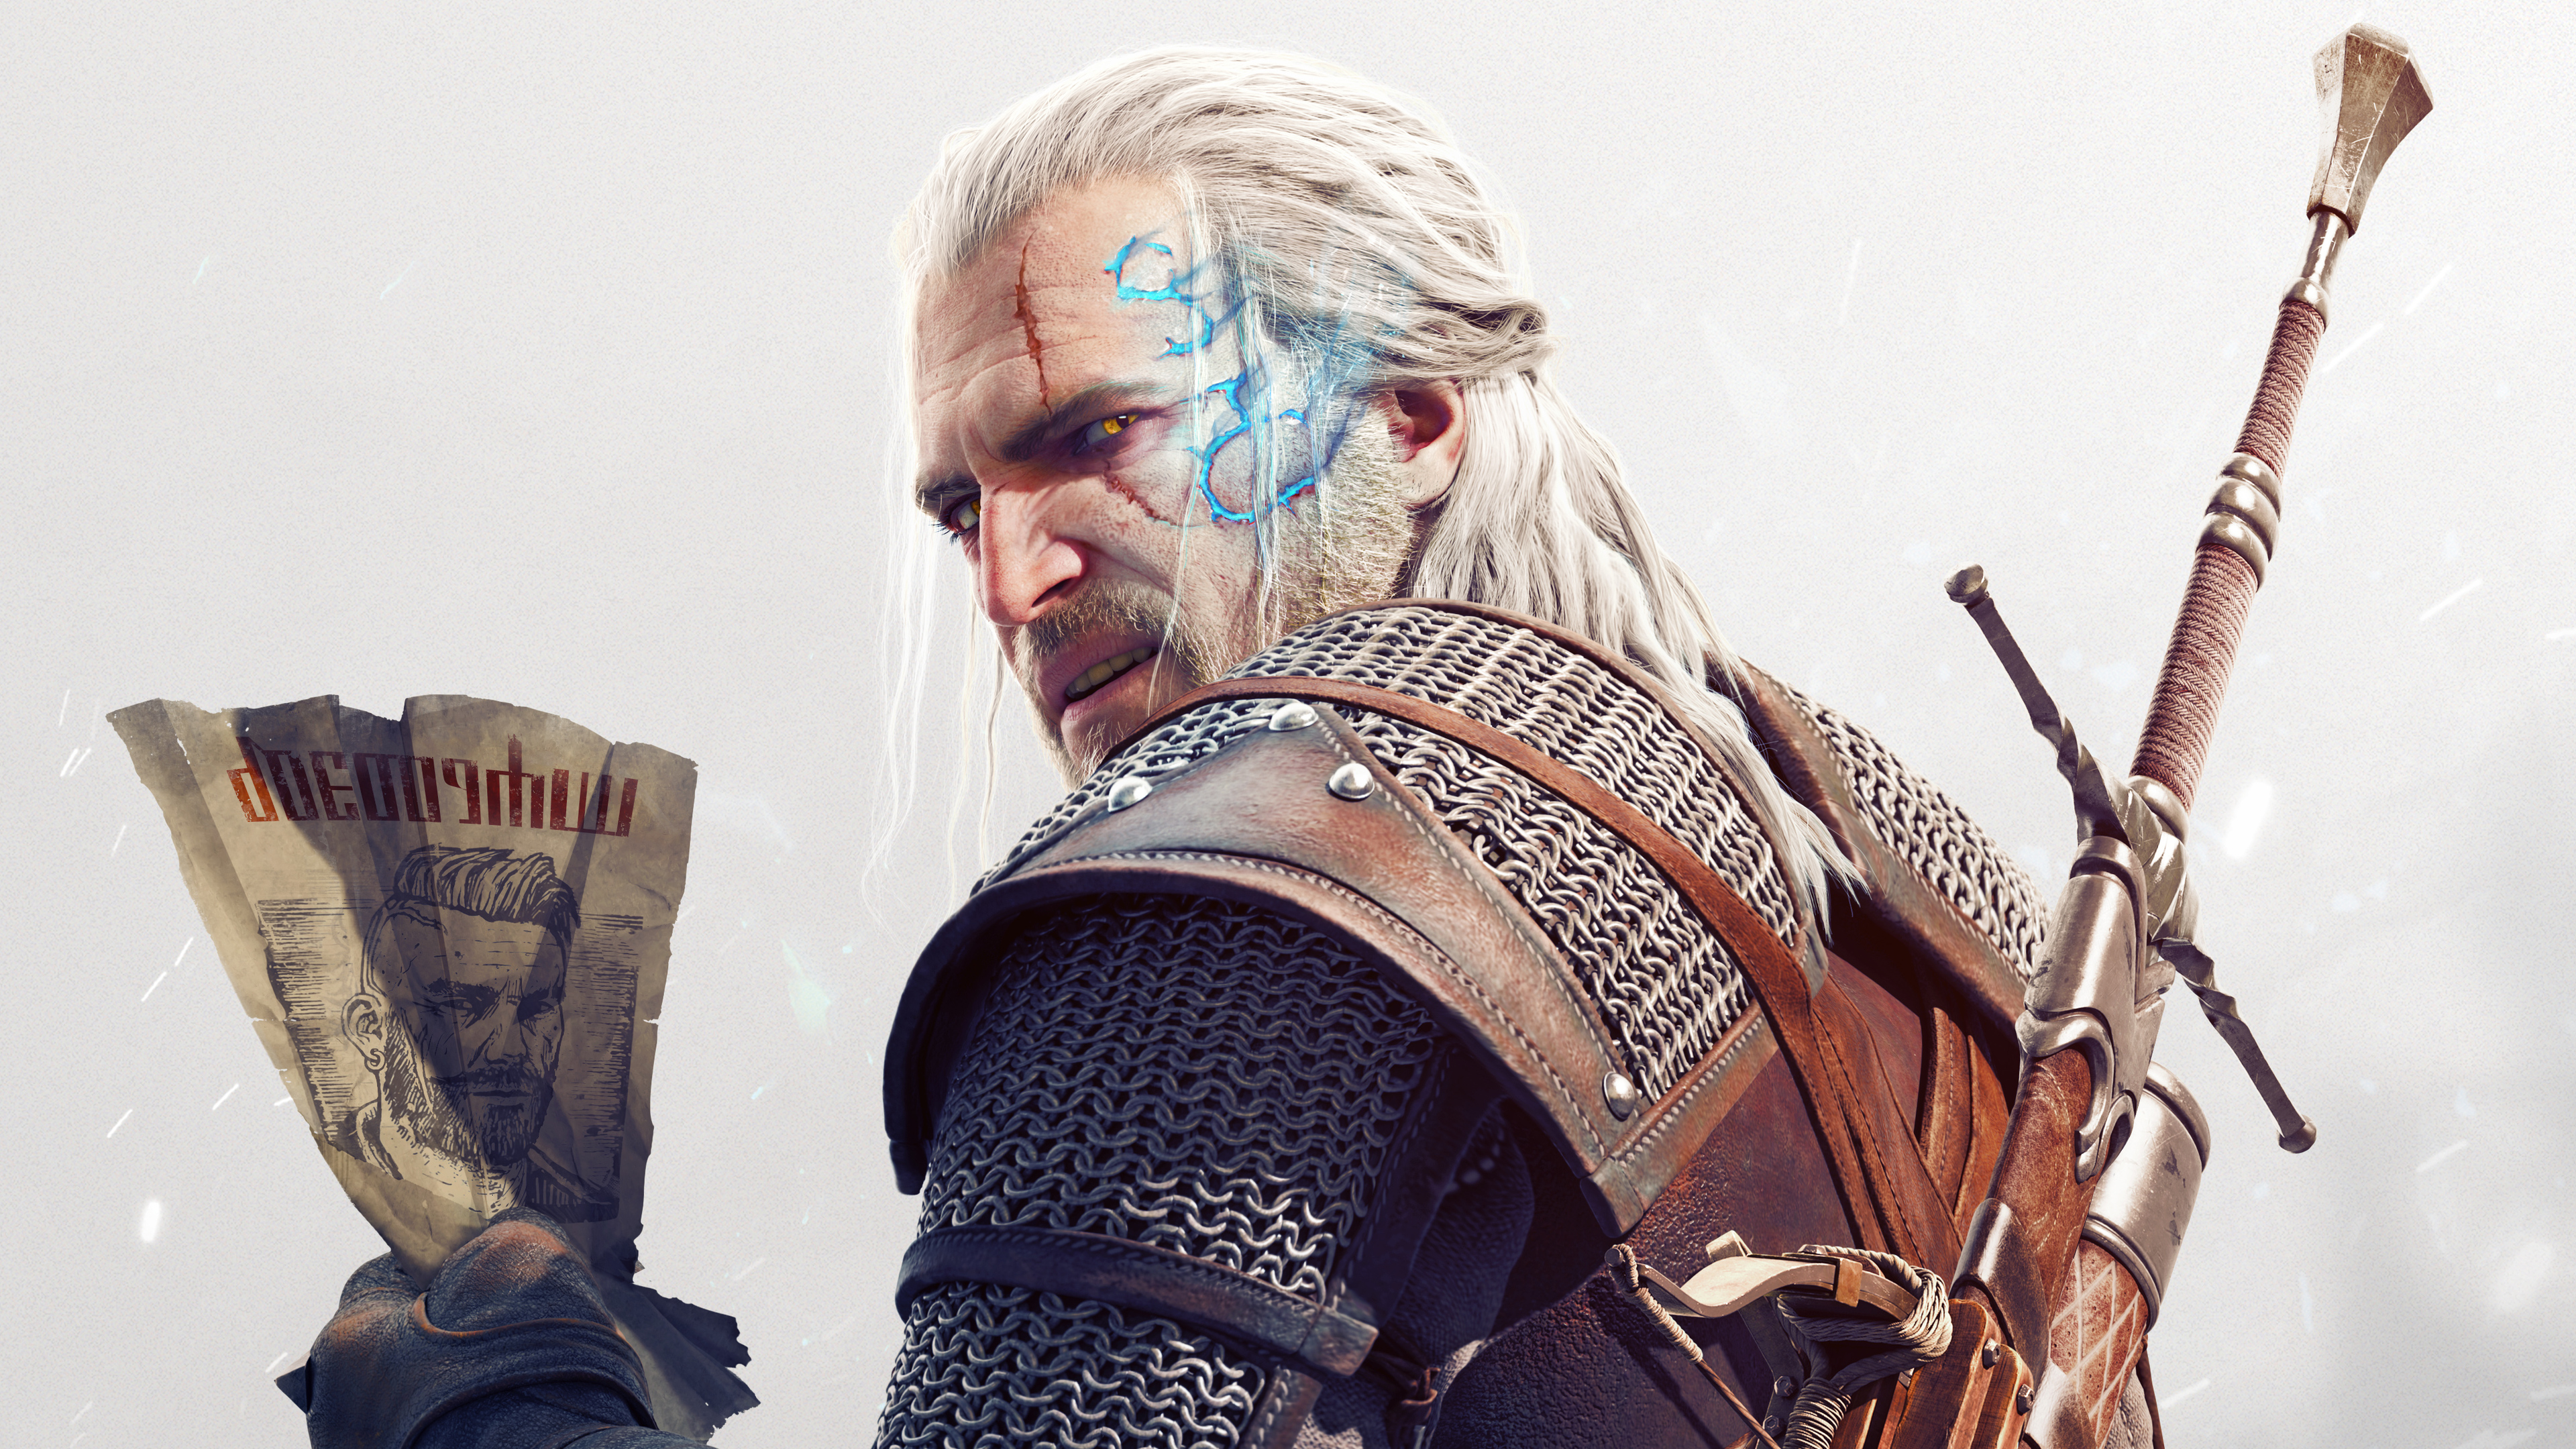 witcher 4k 1558221278 - Witcher 4k - xbox games wallpapers, the witcher 3 wallpapers, ps4 games wallpapers, pc games wallpapers, hd-wallpapers, games wallpapers, deviantart wallpapers, 4k-wallpapers